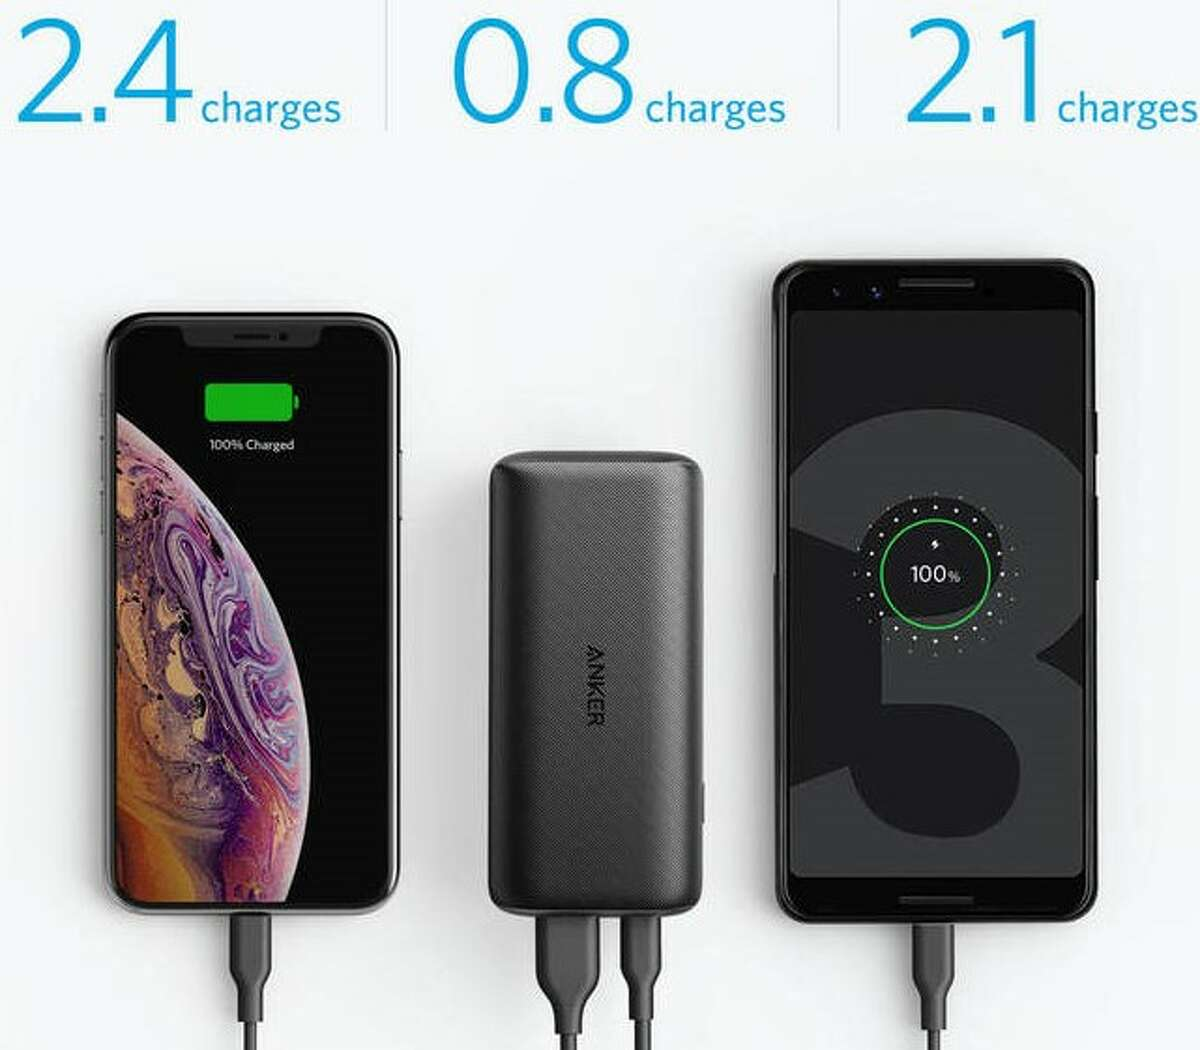 Anker PowerCore 10000 PD | $46 I can't remember the last time I charged my phone using an external battery pack. It used to be a constant, but with the proliferation of wireless charging pads everywhere in my life, plugs on planes and trains and in airports, and better batteries in phones, what was once the cornerstone of everyday carry consumer tech is a specialty item for me now. That all said, those with long commutes who find themselves burning through their battery on the regular will get a lot of peace of mind from carrying around an external battery. I won't even look at an external battery pack without USB-C PD (the ability to charge your iPhone at maximum speed with a USB-C to Lightning Cable), and you shouldn't either.